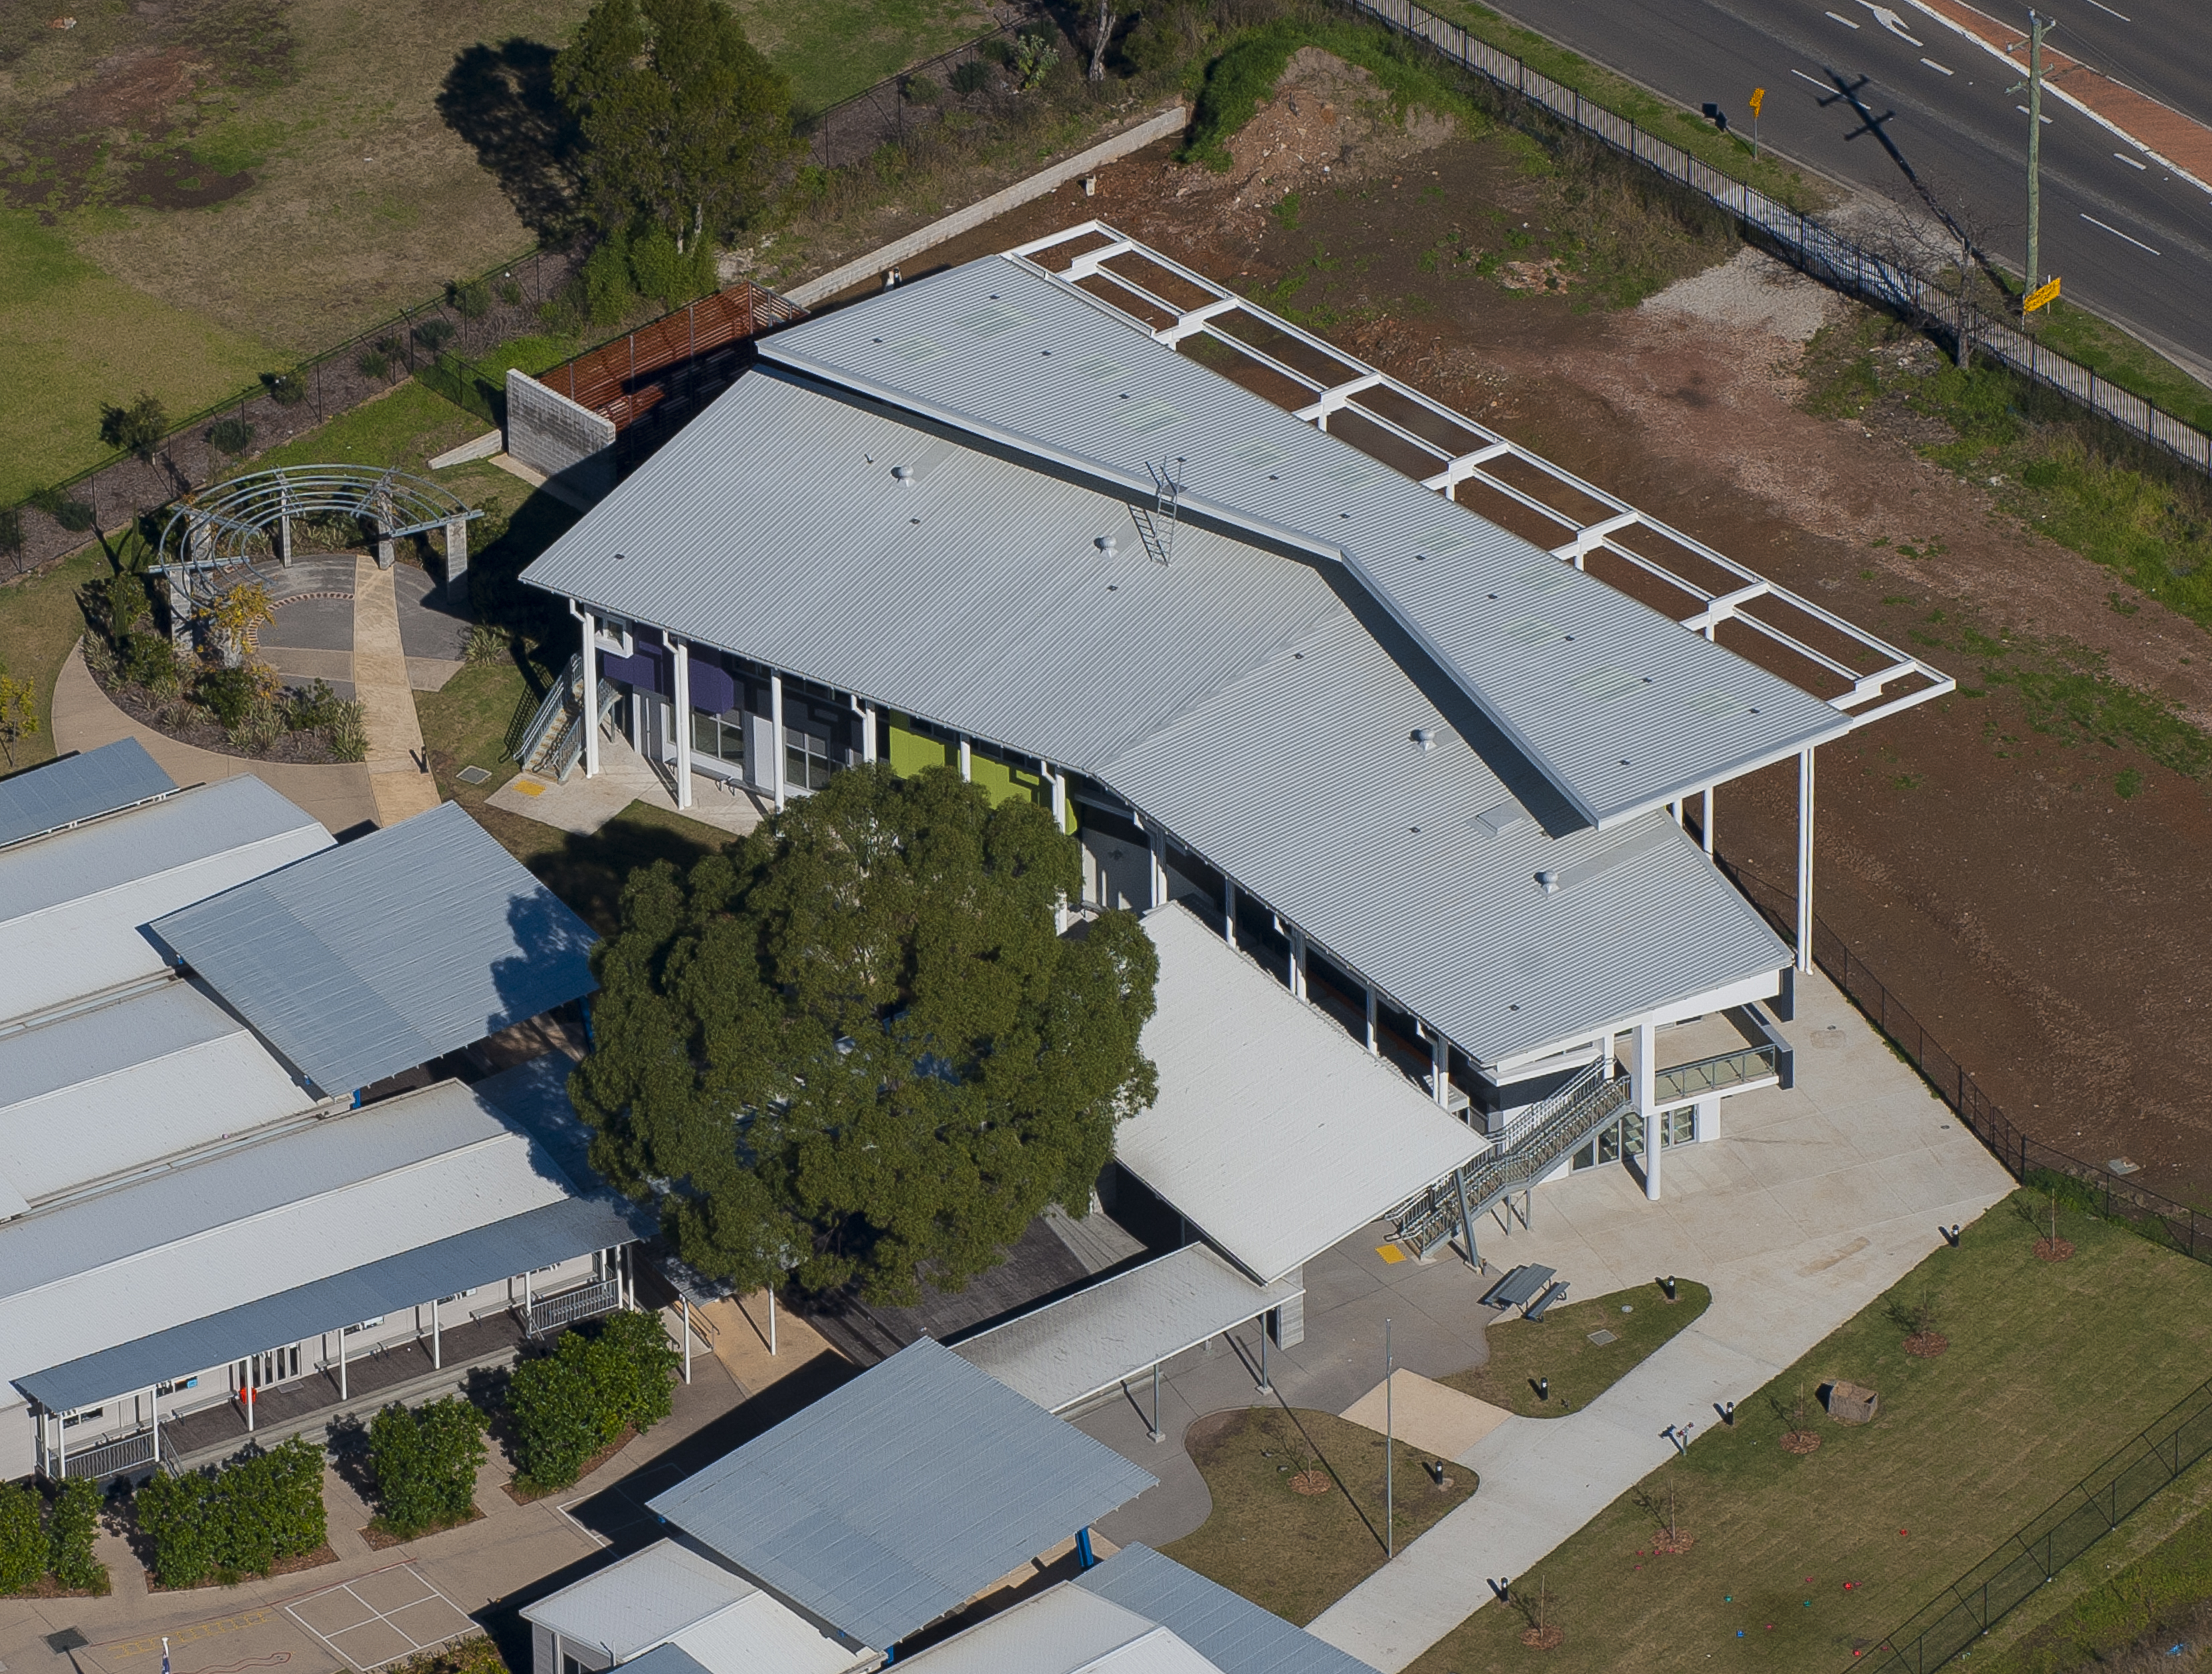 Kellyville Aerial Photos